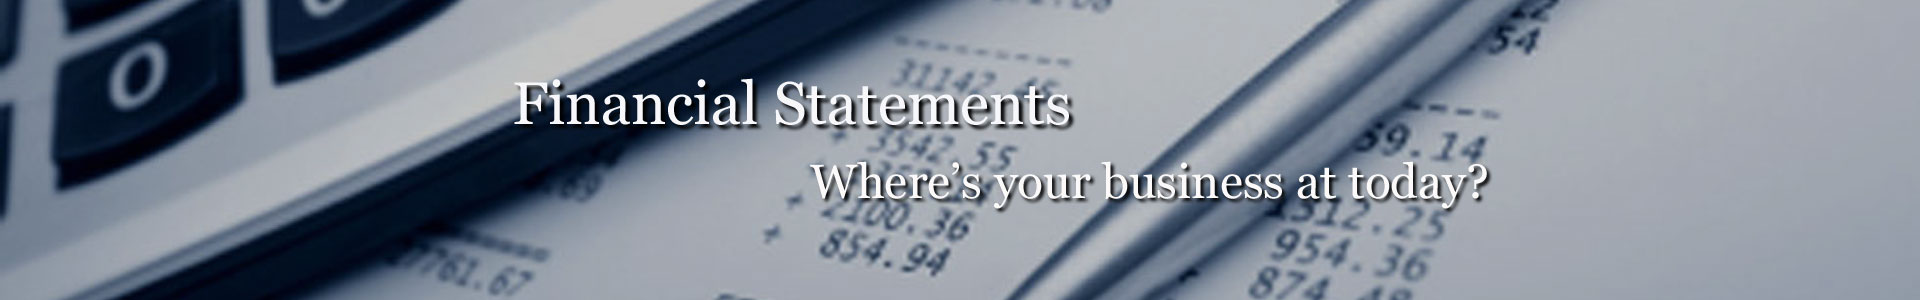 financial-statements-1920x300.jpg